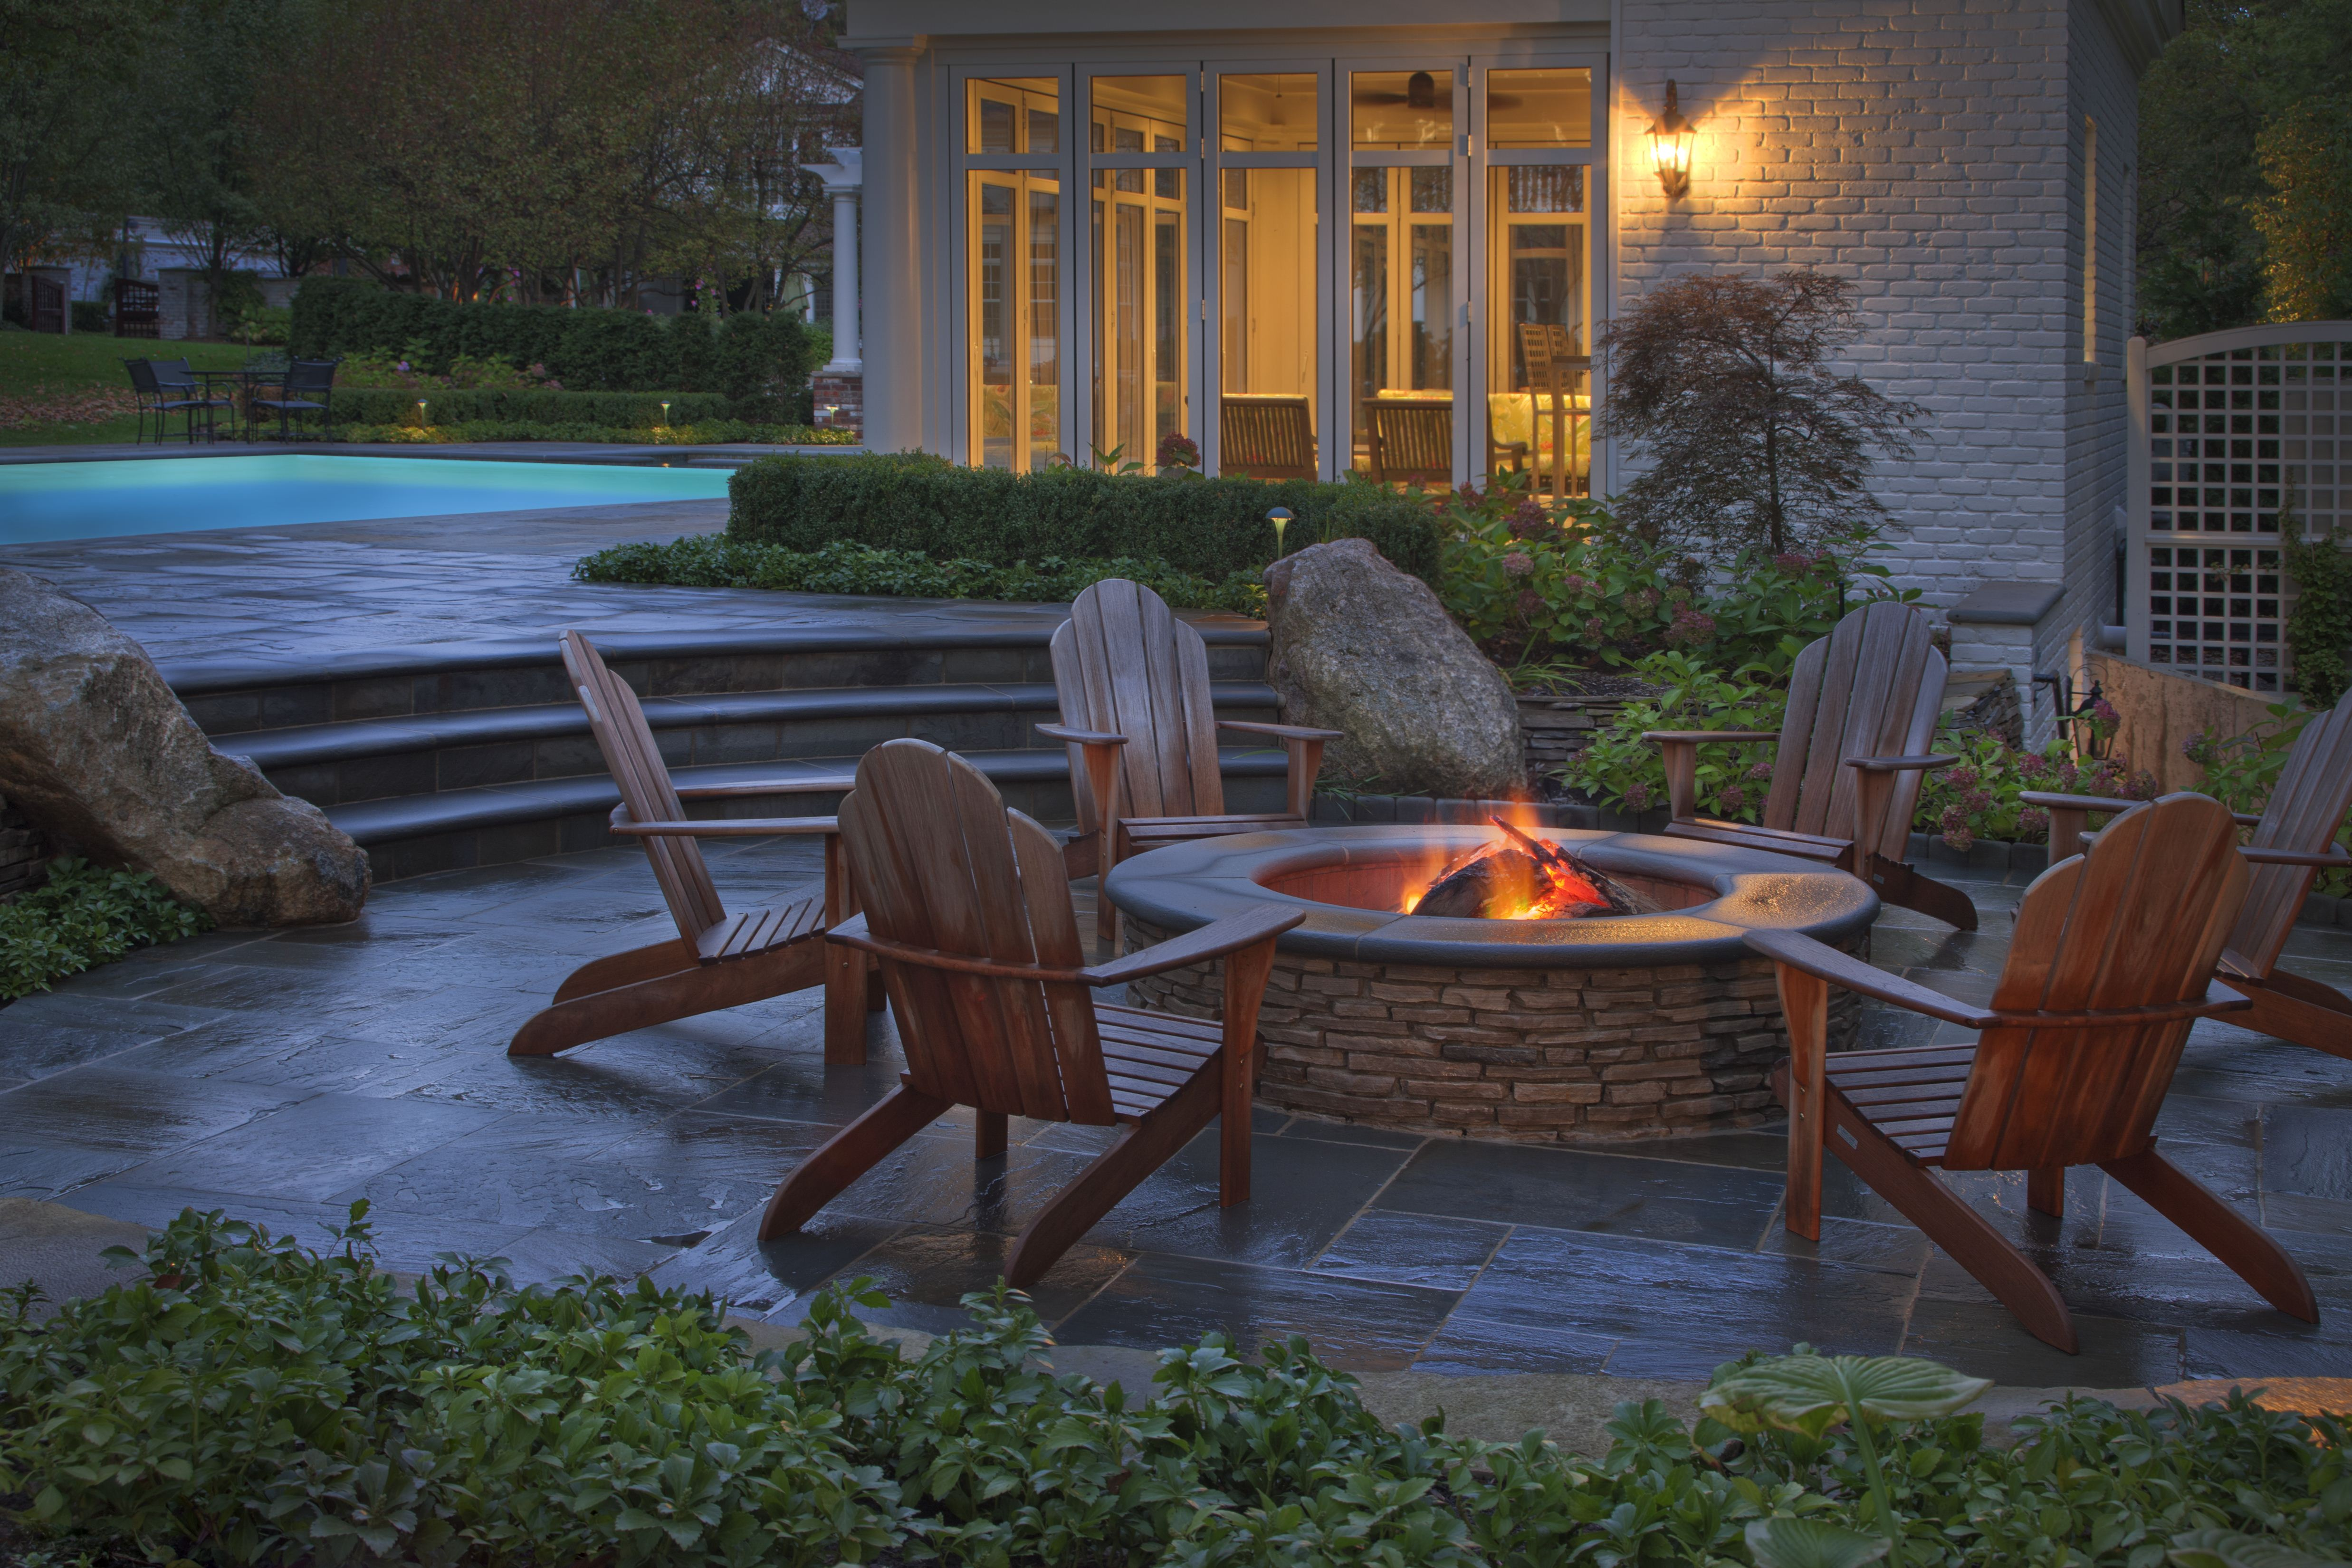 New Backyard Landscaping Information Offers Design Ideas ... on Fireplace In The Backyard id=54649